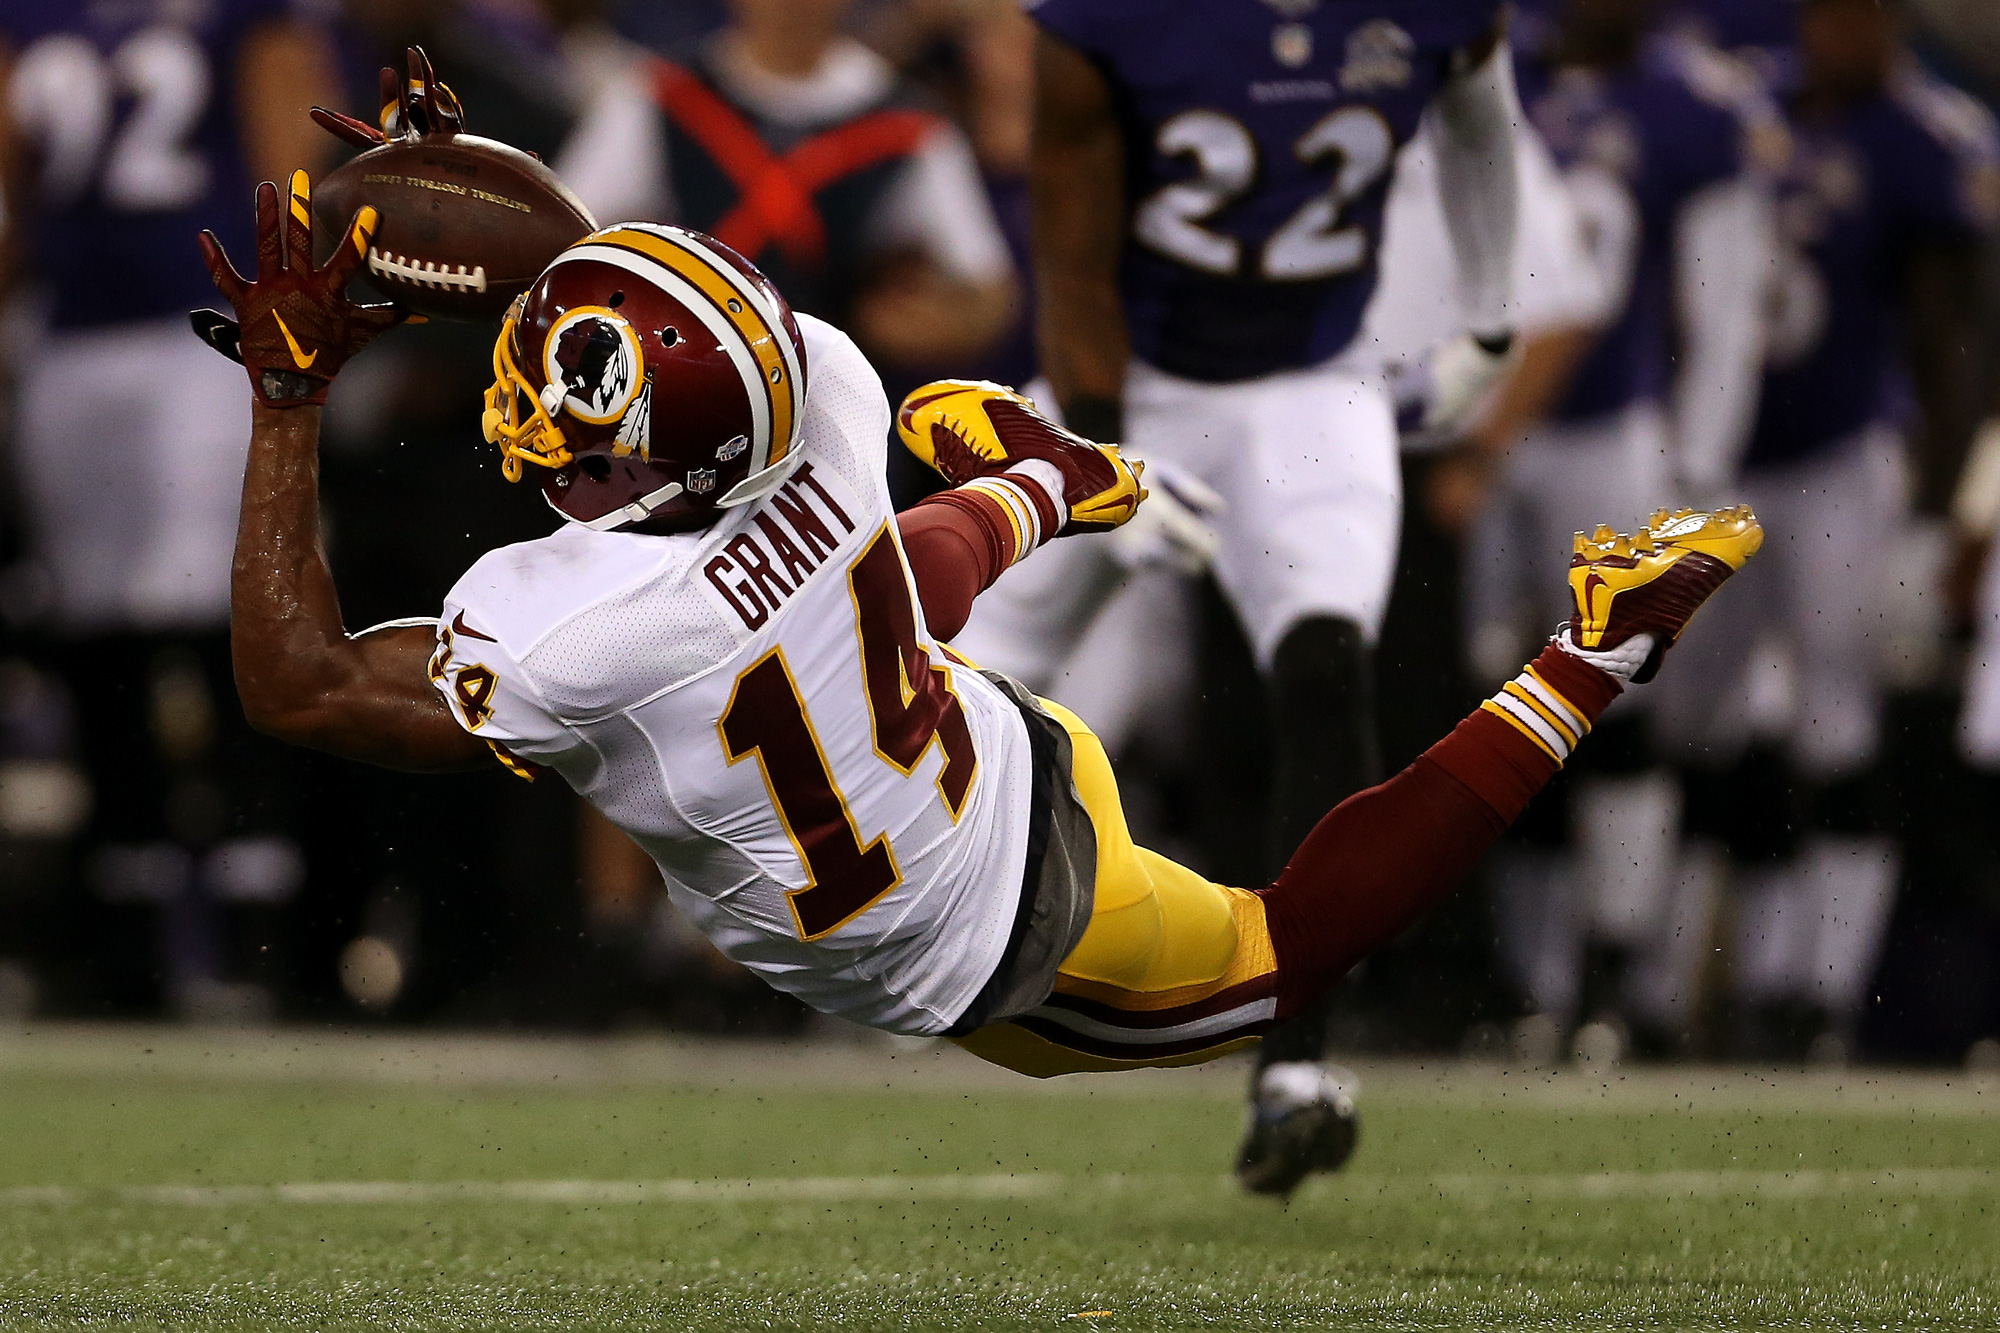 Wide receiver Ryan Grant #14 of the Washington Redskins misses a catch in the first quarter of a preseason game against the Baltimore Ravens at M&T Bank Stadium on August 29, 2015 in Baltimore, Maryland.